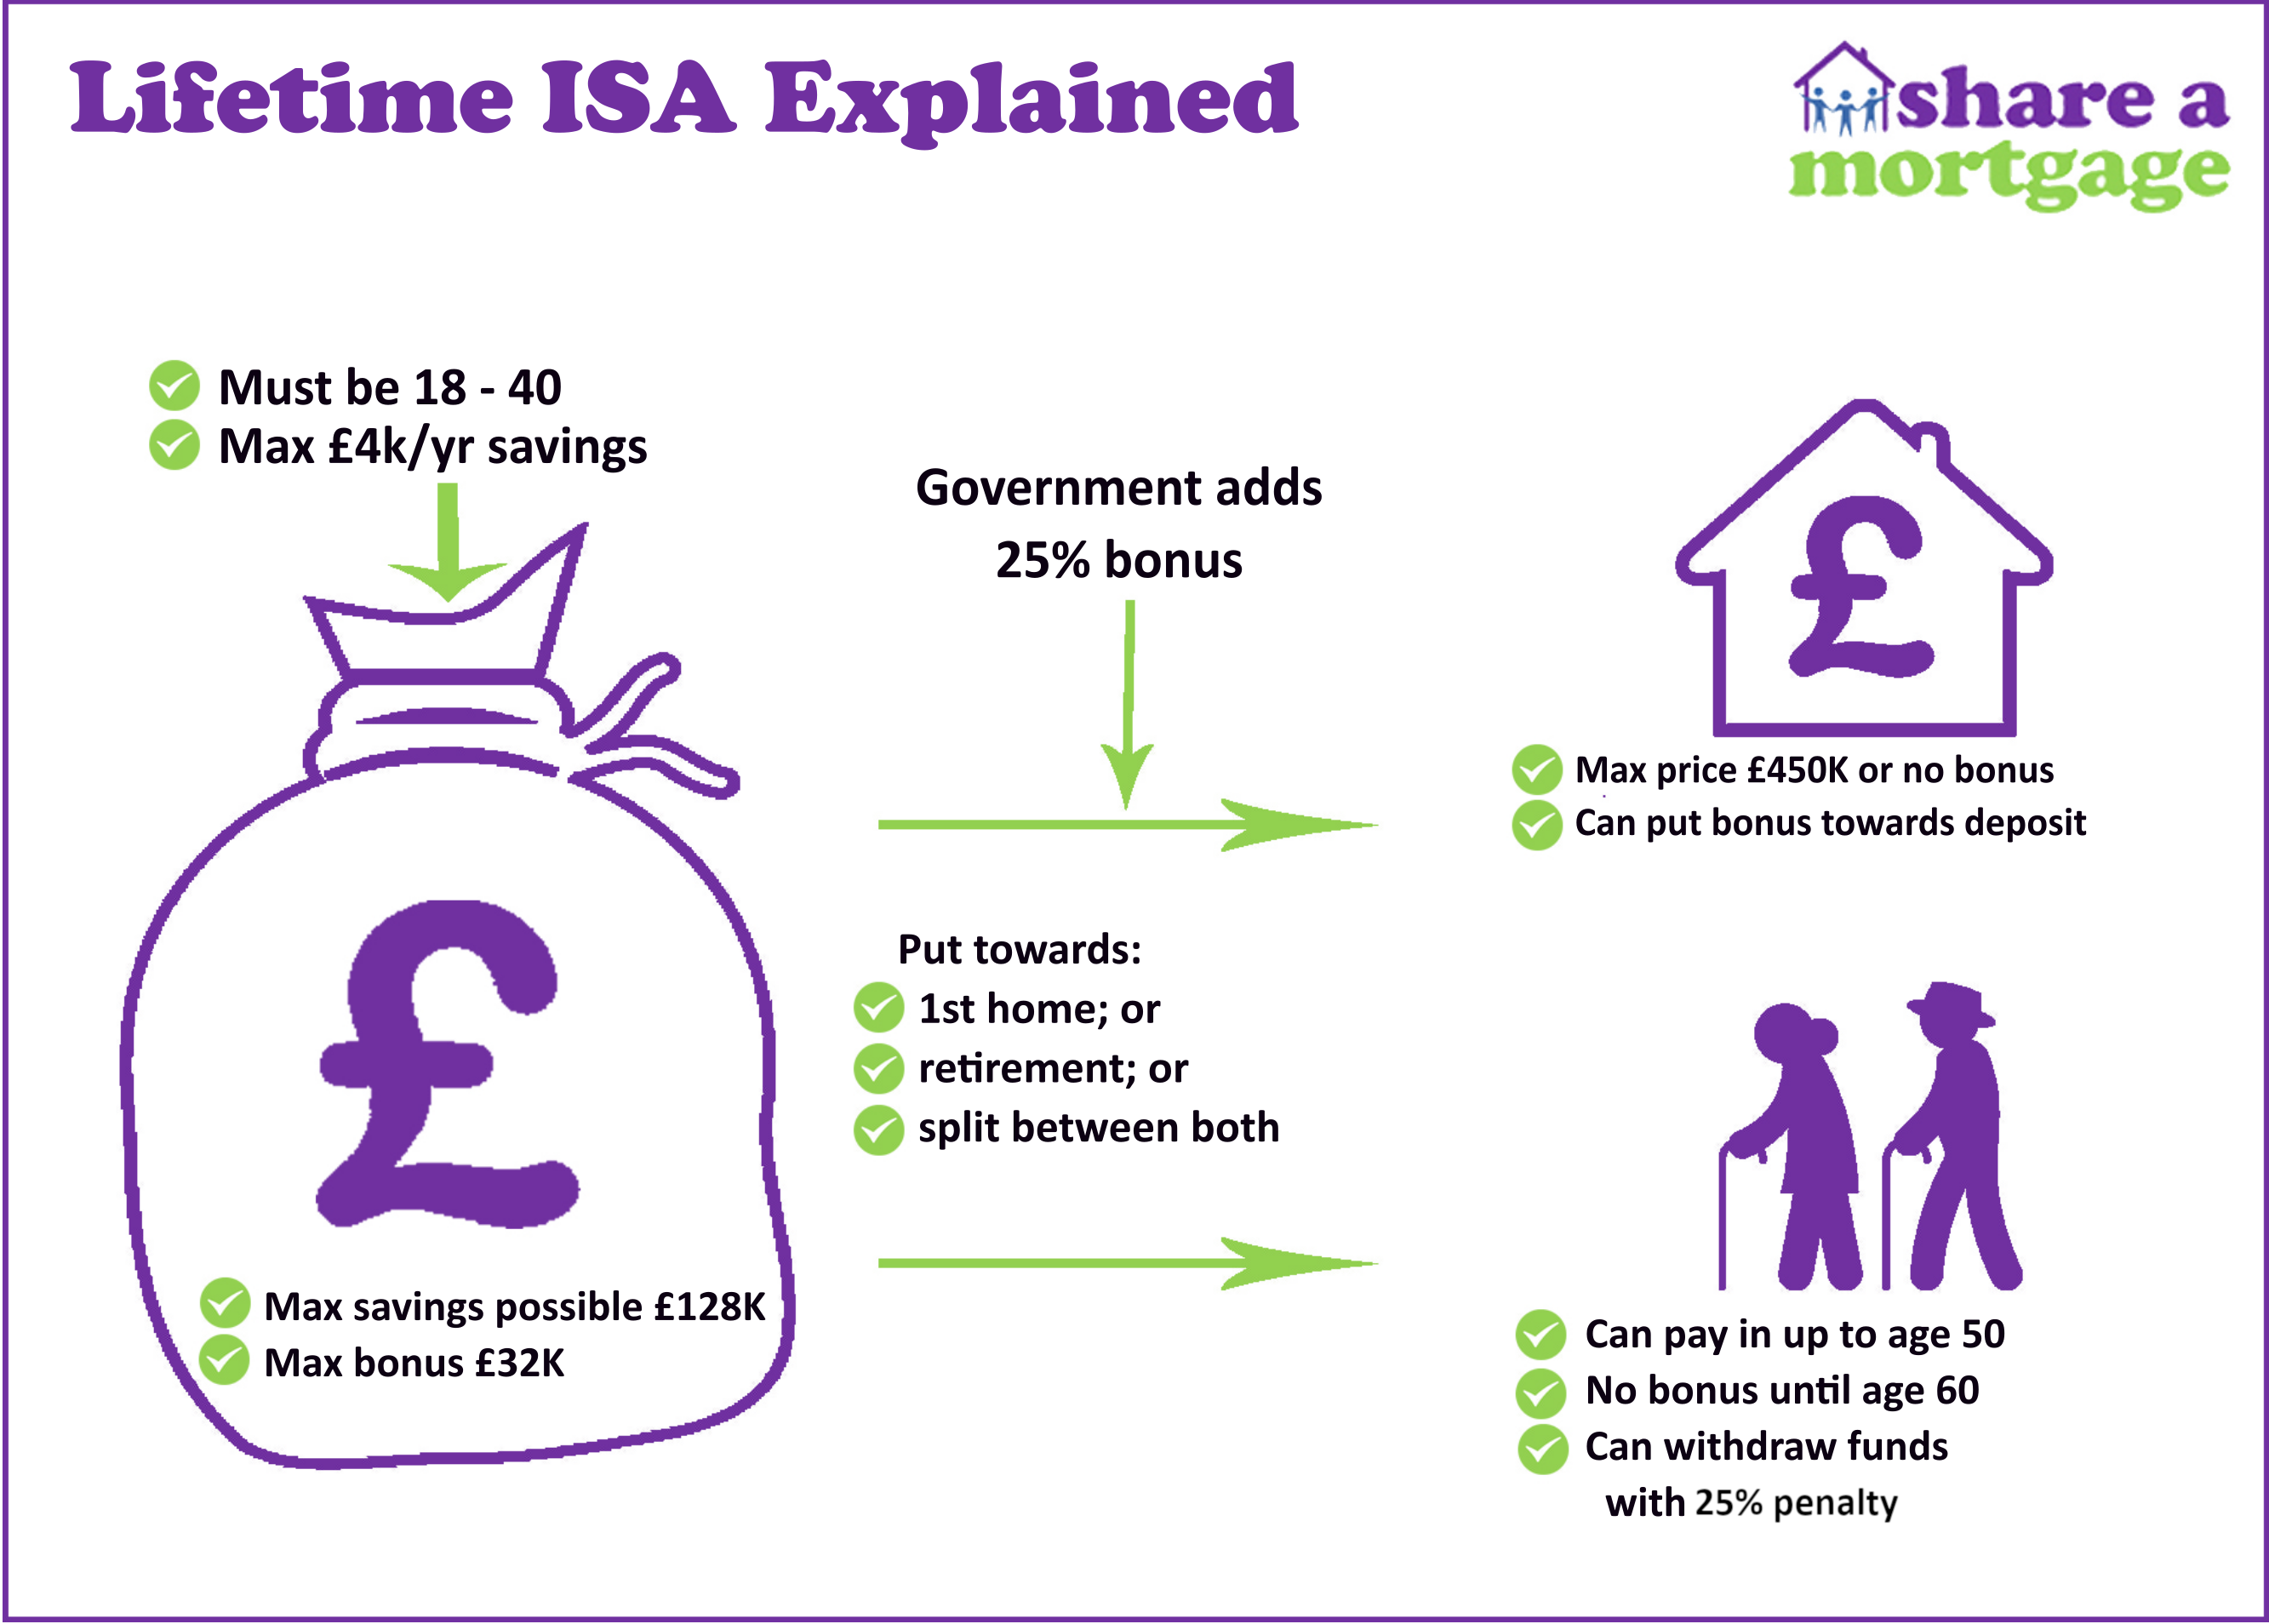 Lifetime-ISA-Explained-Diagram